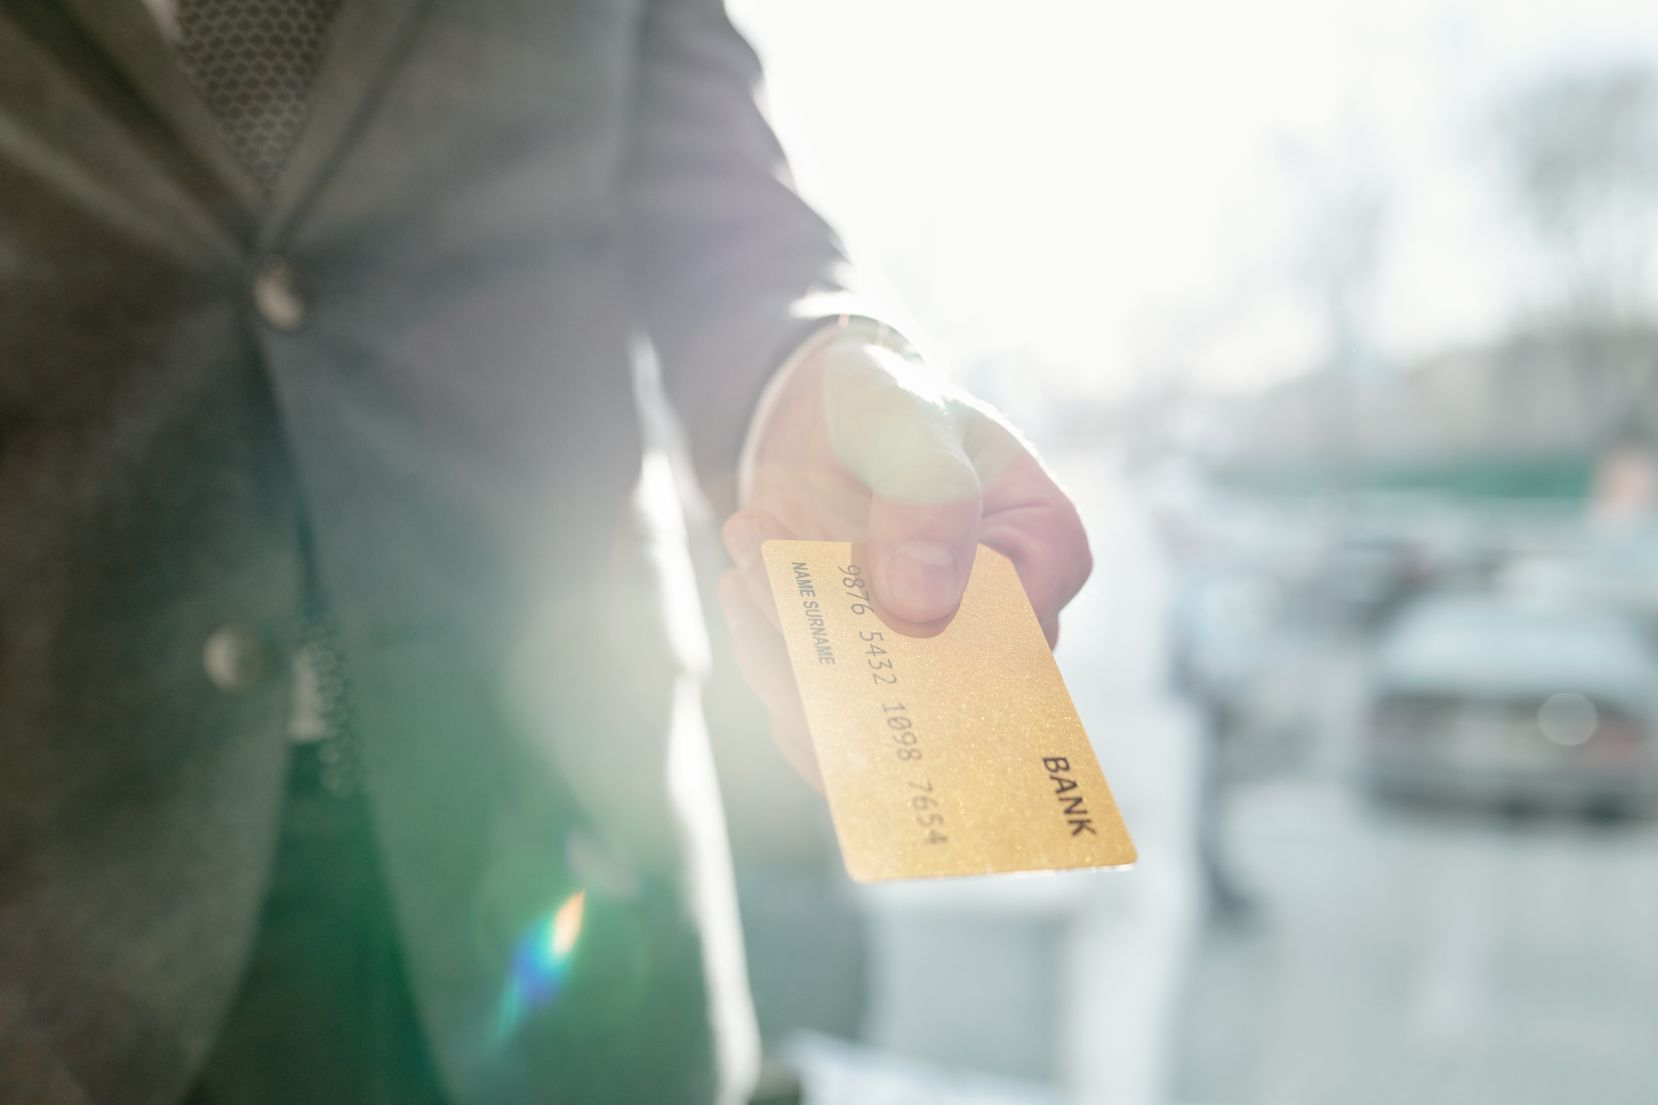 Never Pay in Cash: 5 Reasons to Choose Credit or Debit